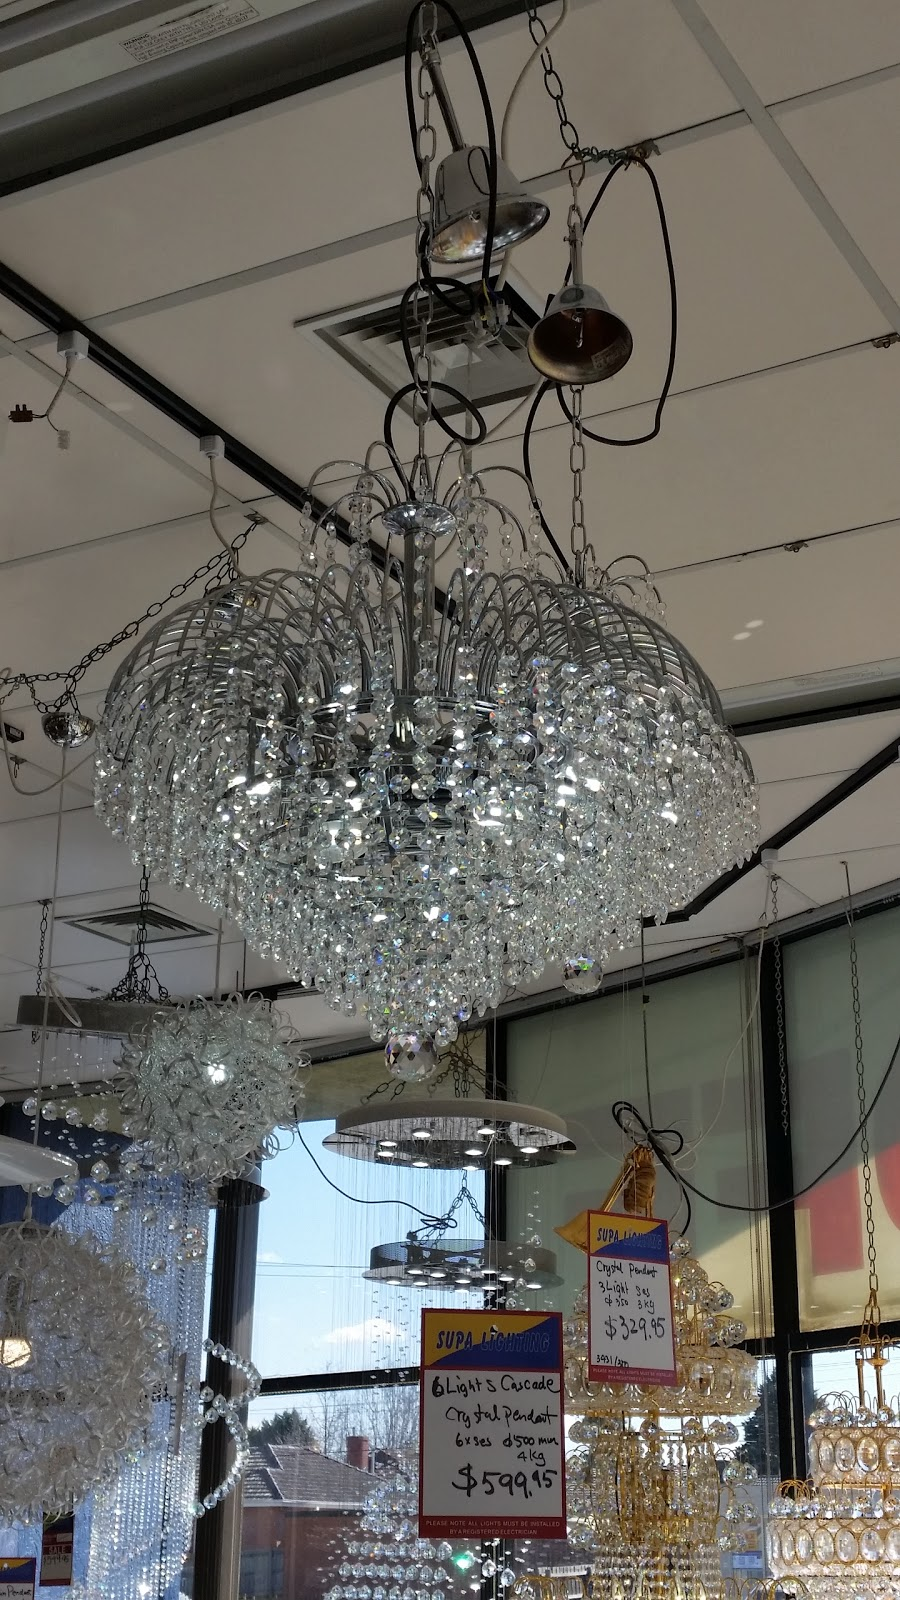 Supa Lighting | home goods store | 122-126 Springvale Rd, Springvale VIC 3171, Australia | 0395624546 OR +61 3 9562 4546